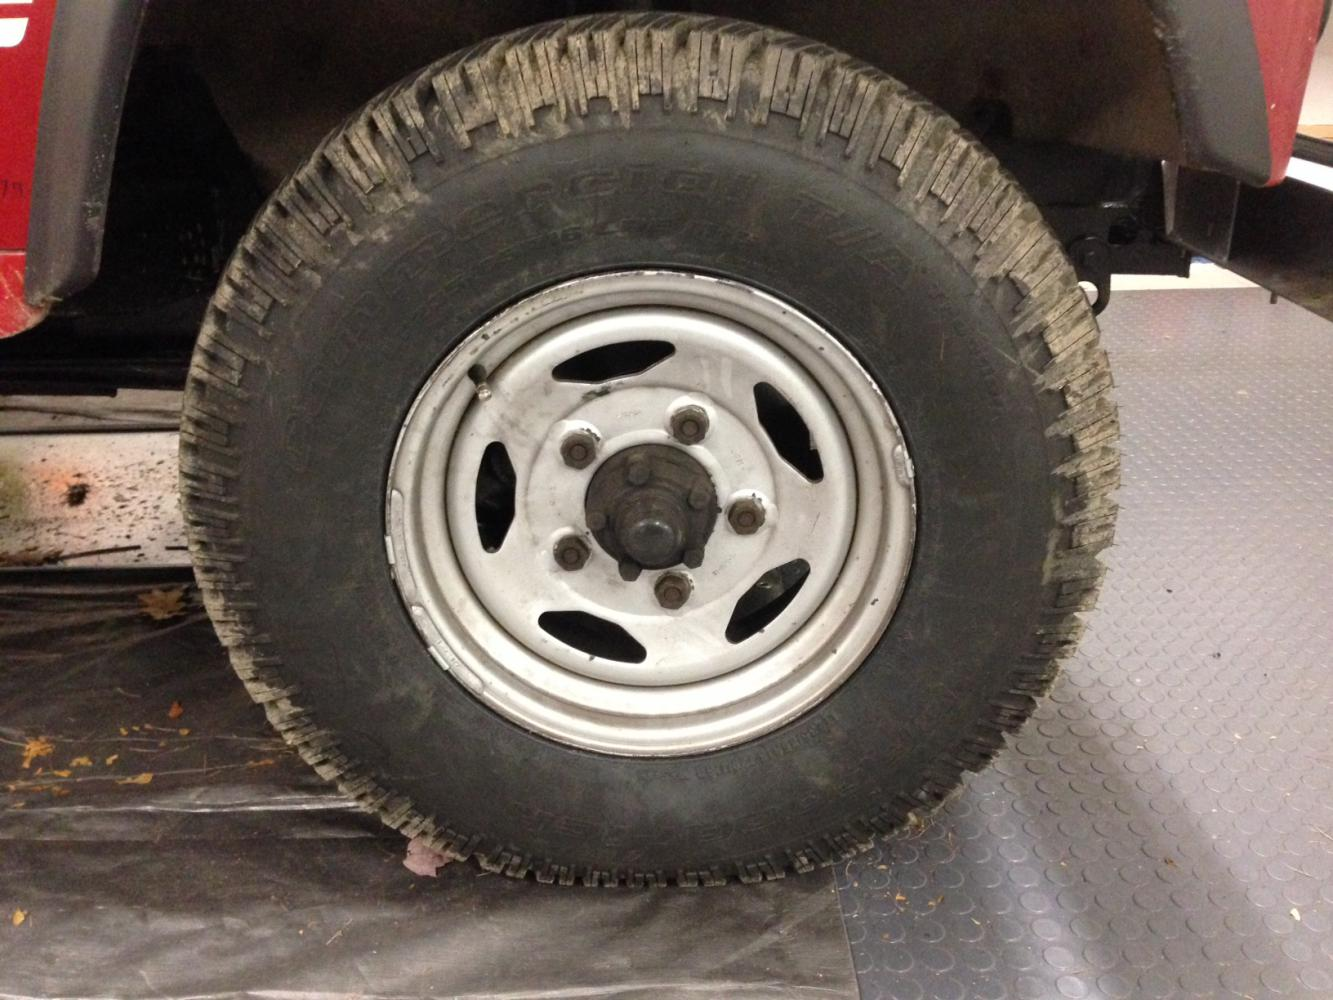 Click image for larger version  Name:Stinky wheel.jpg Views:13 Size:163.9 KB ID:335377